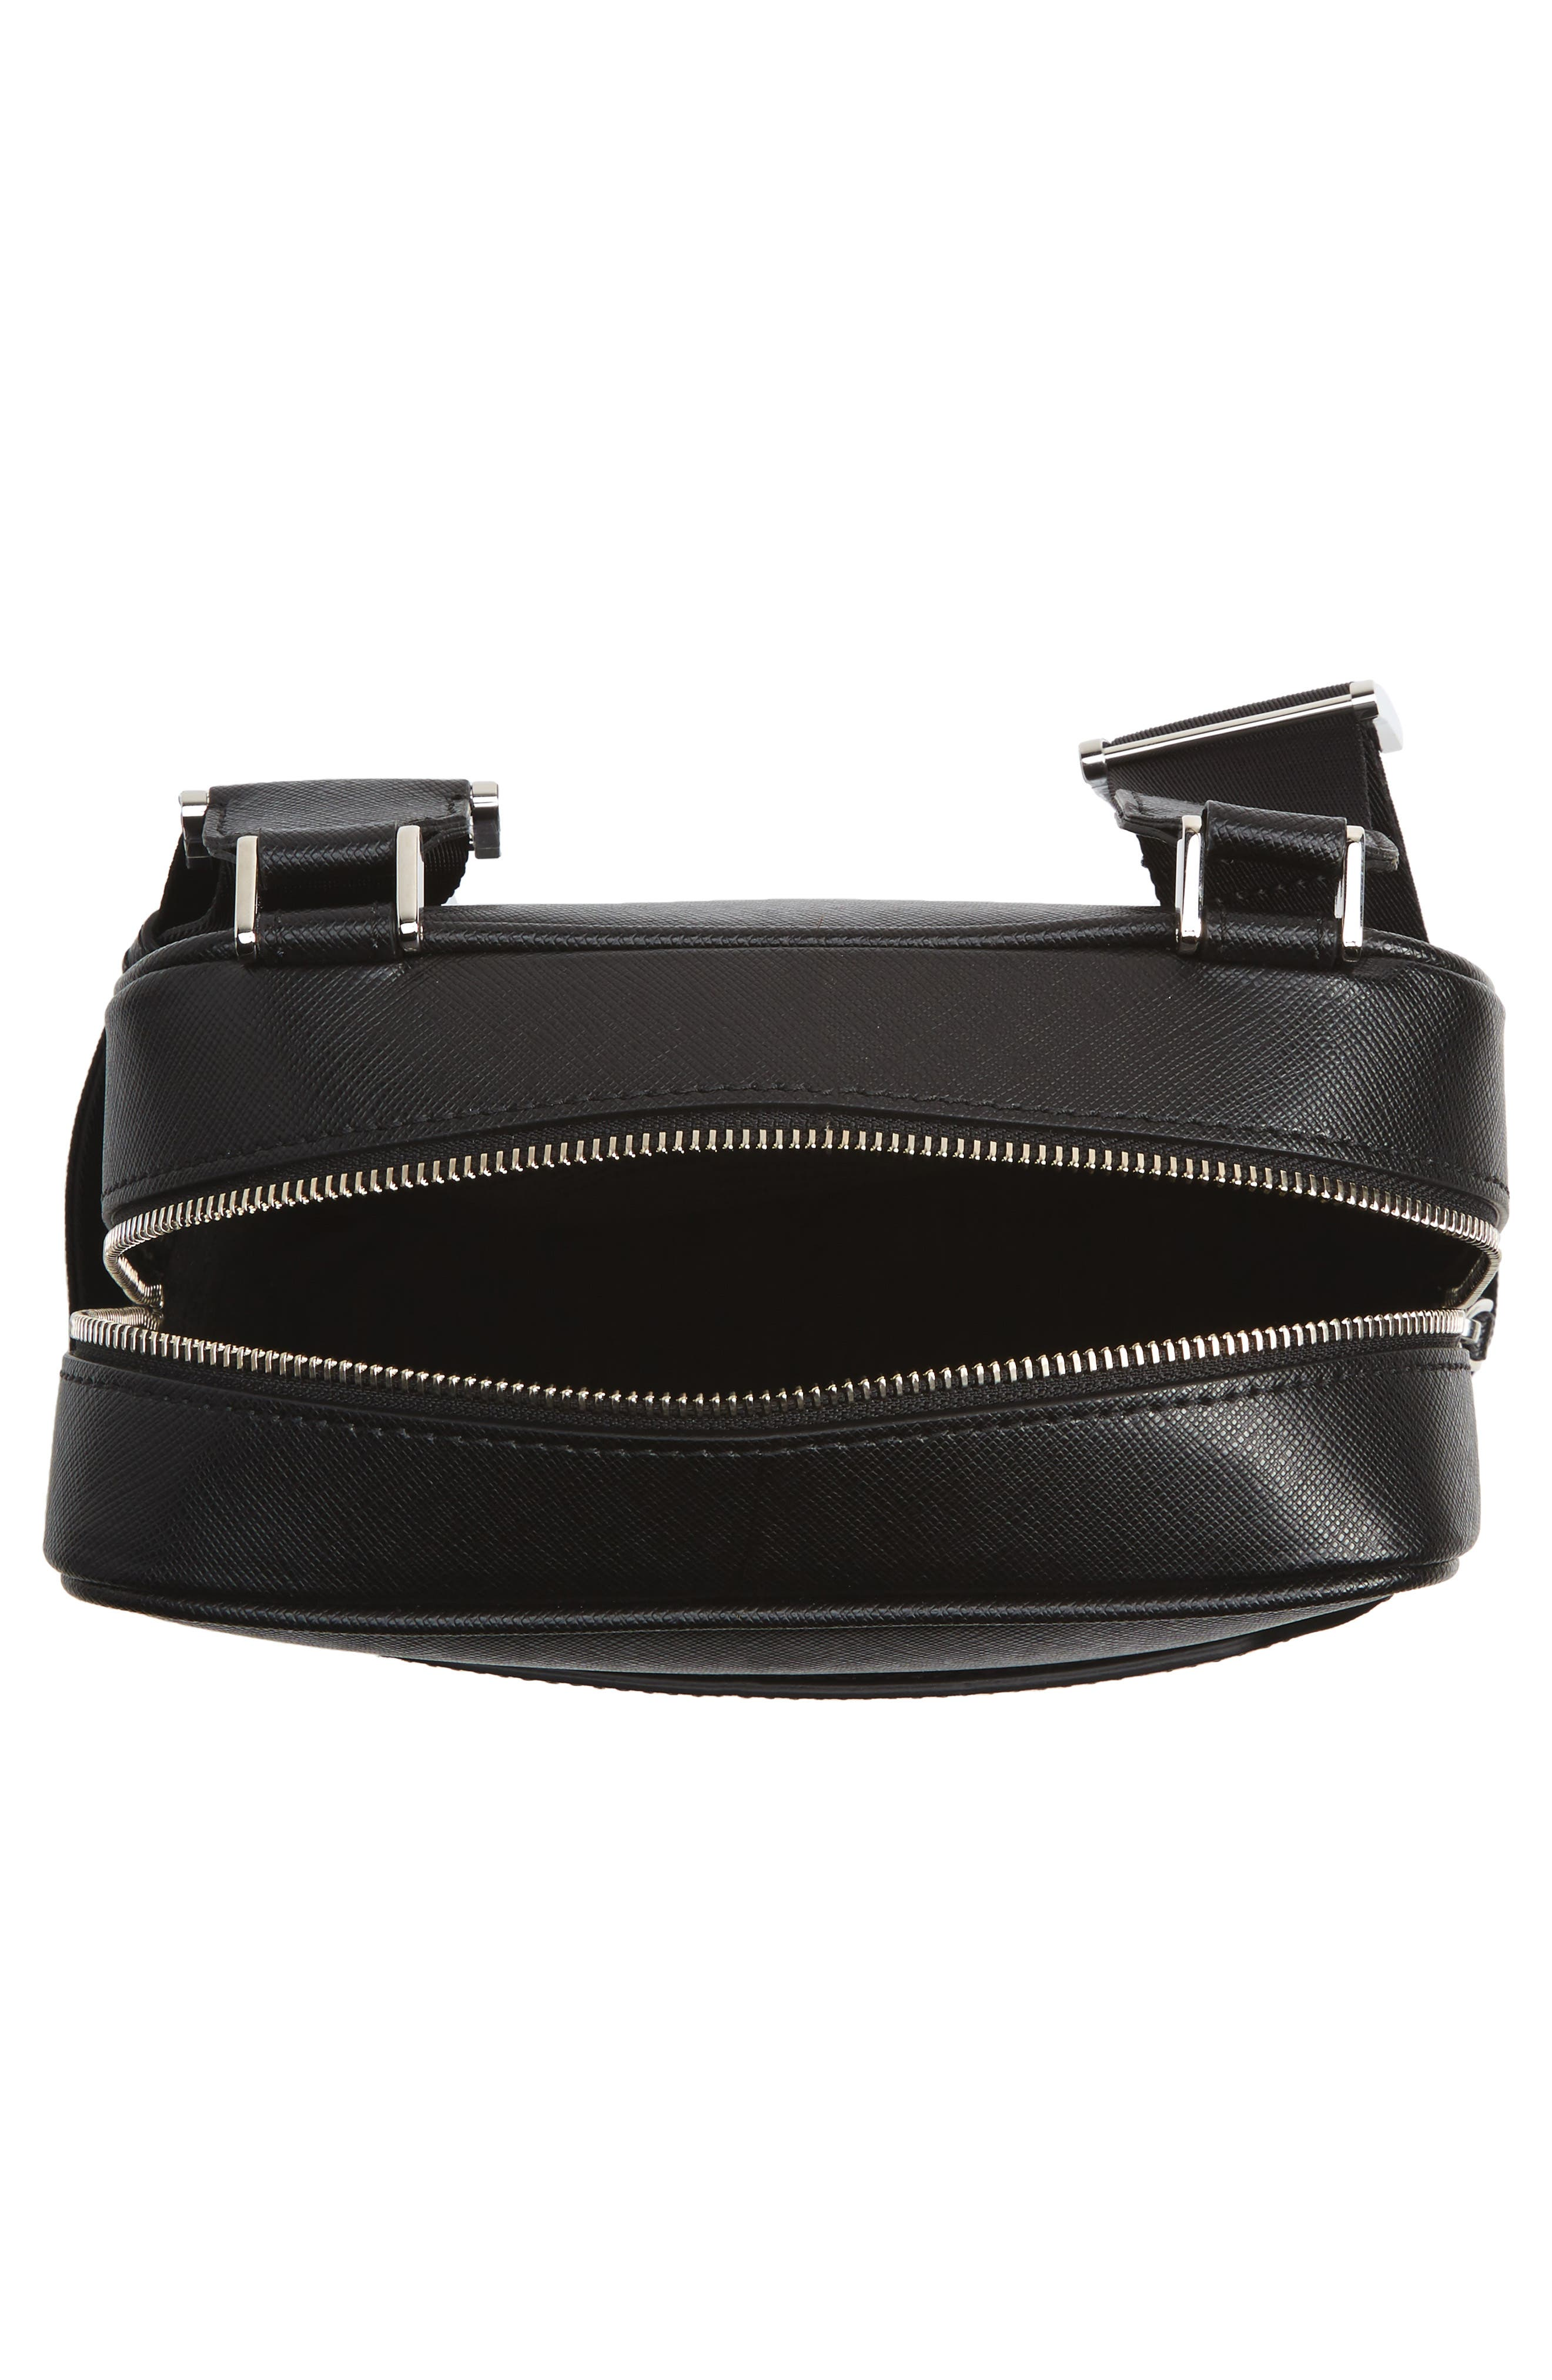 Sartorial North South Leather Bag,                             Alternate thumbnail 4, color,                             Black